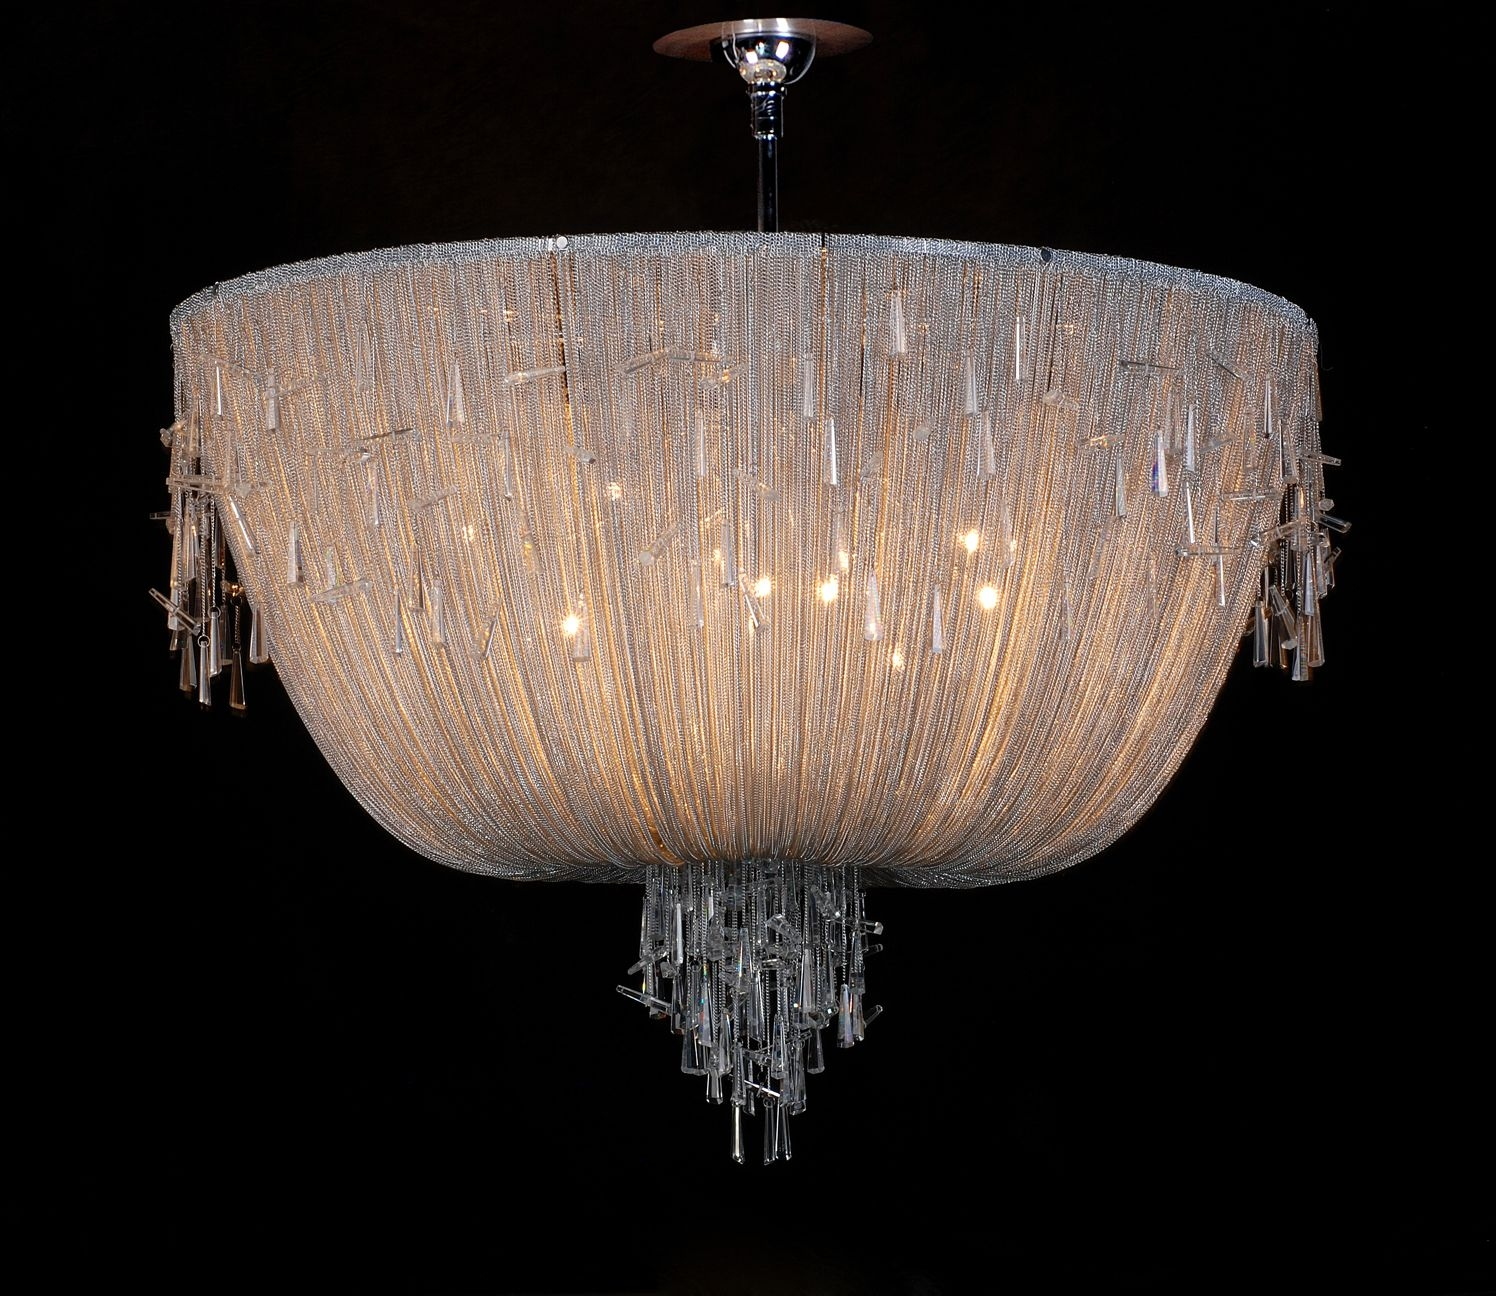 Home Bespoke Italian Chandeliers Hand Blown Glass Lighting Within Italian Chandeliers Style (View 3 of 12)